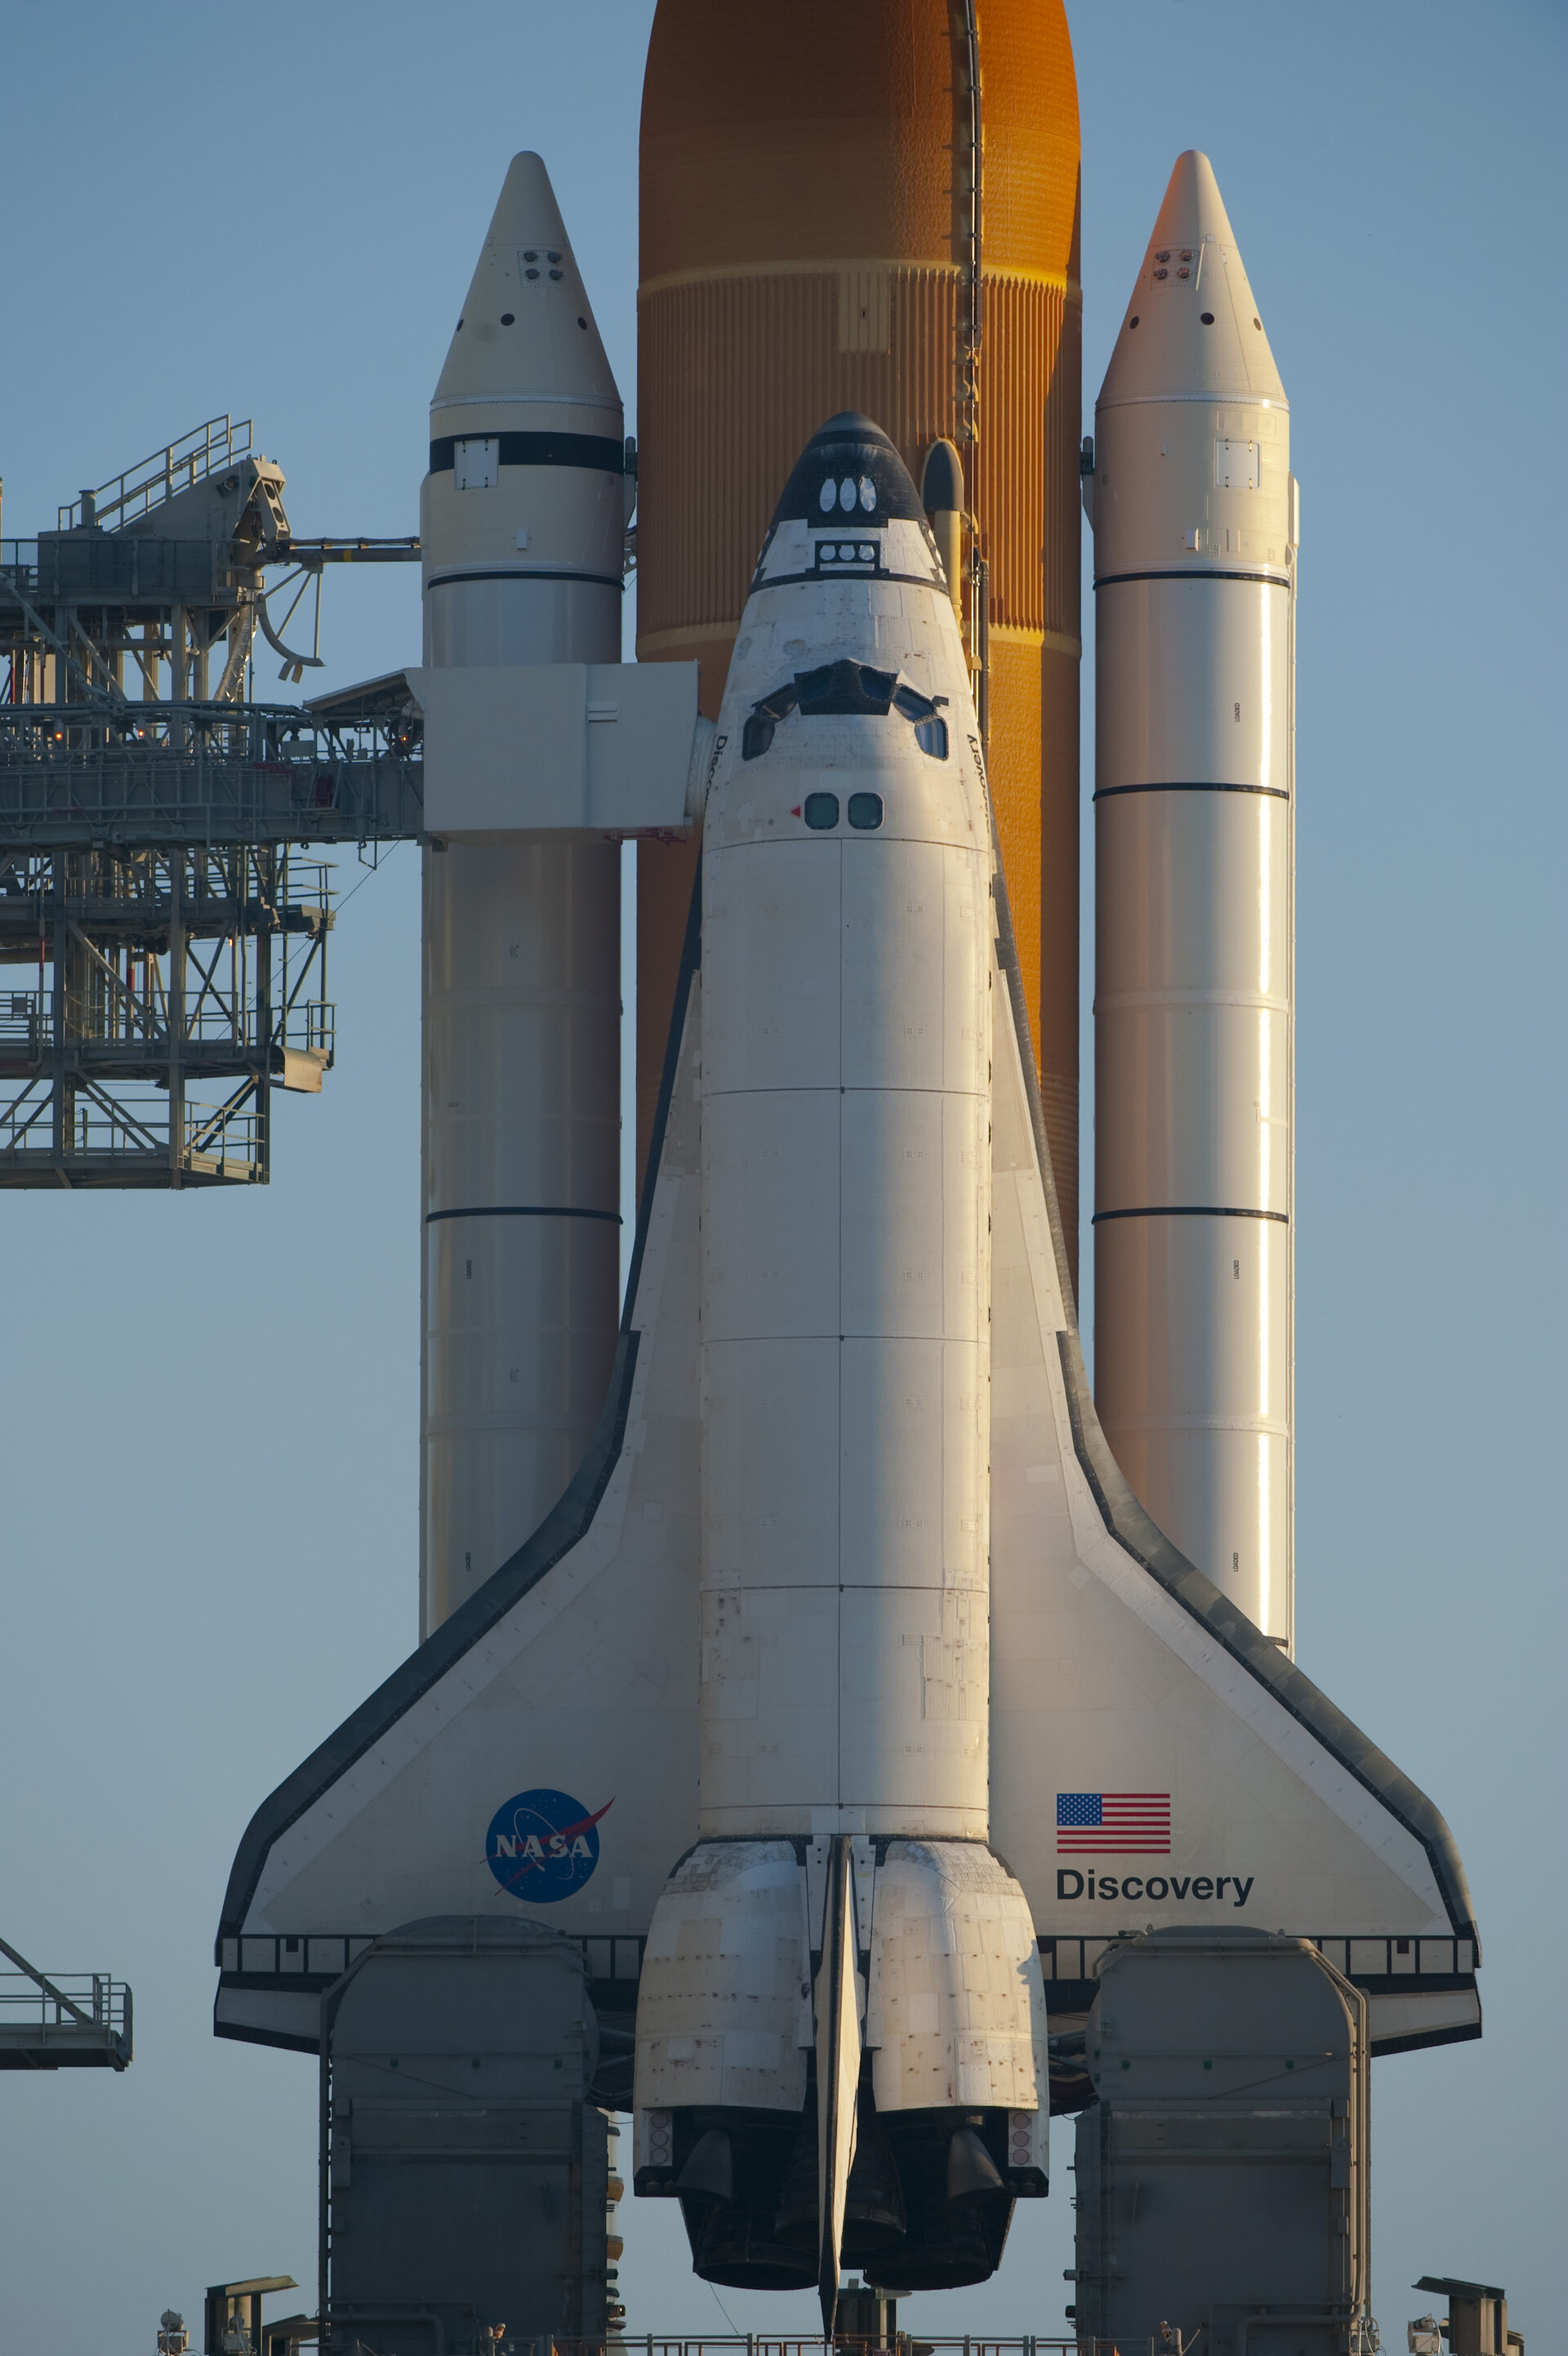 Esa Space Shuttle Discovery On The Launch Pad